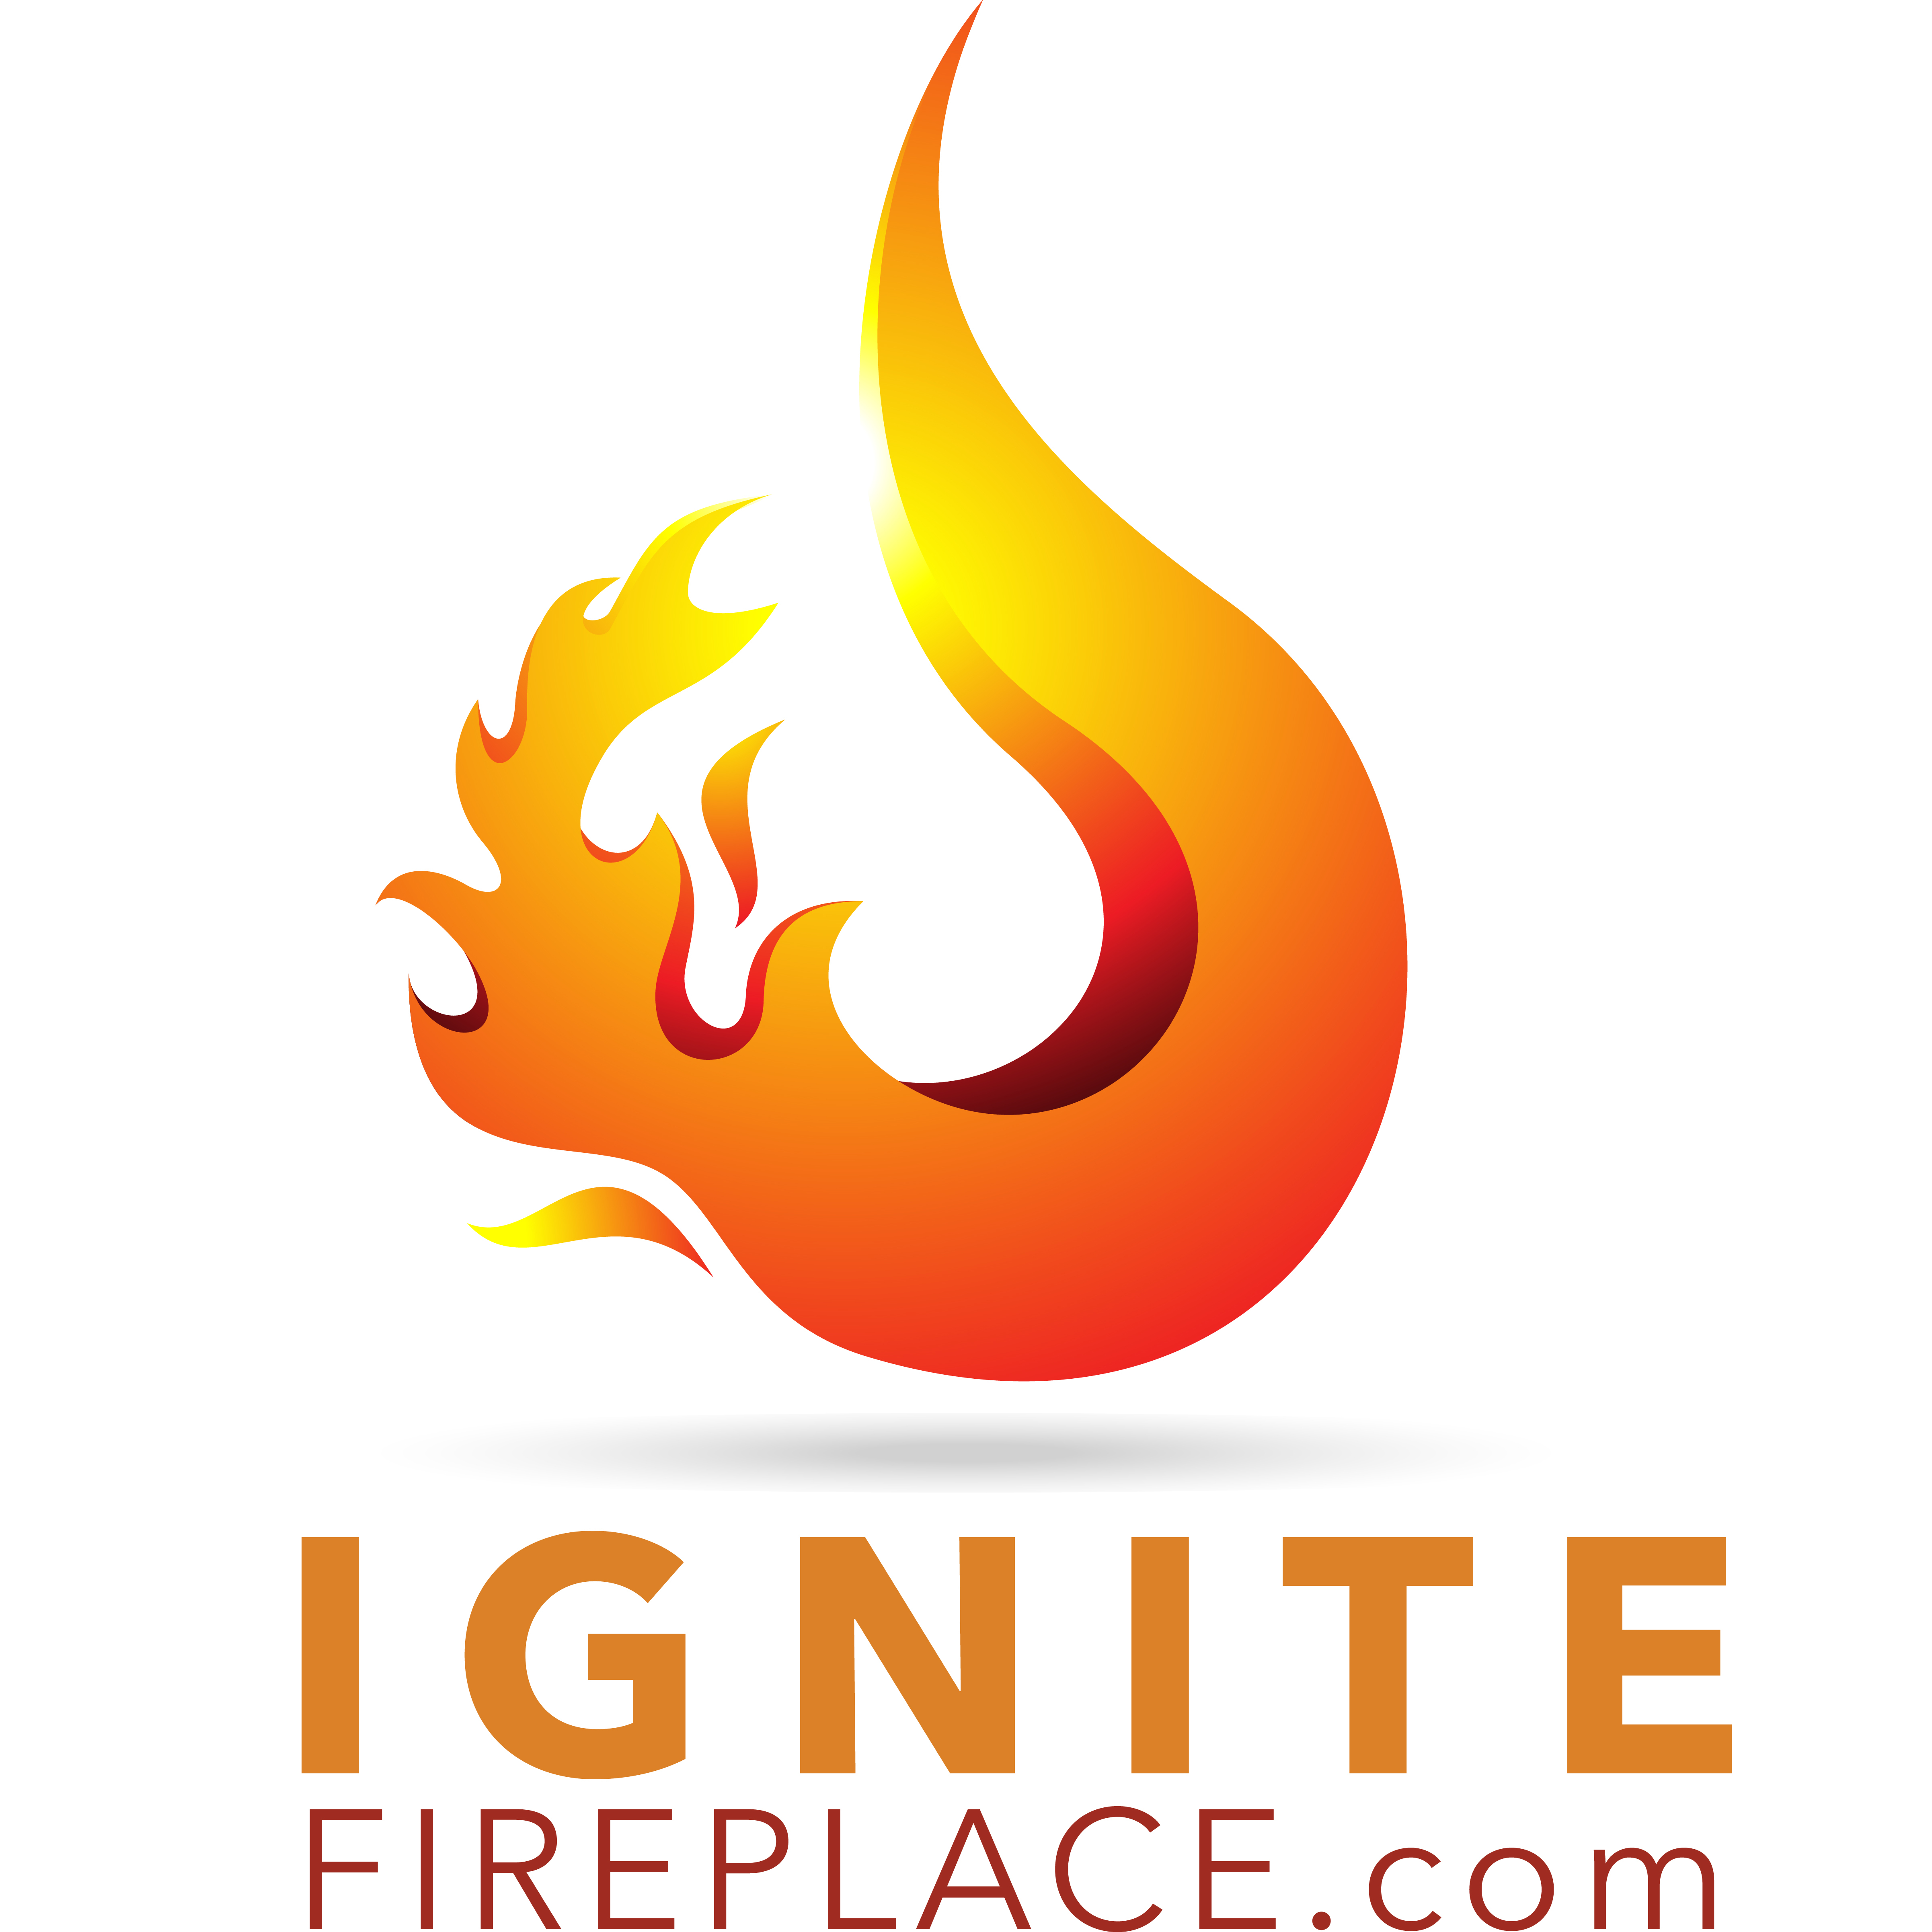 image of Ignite Fireplace